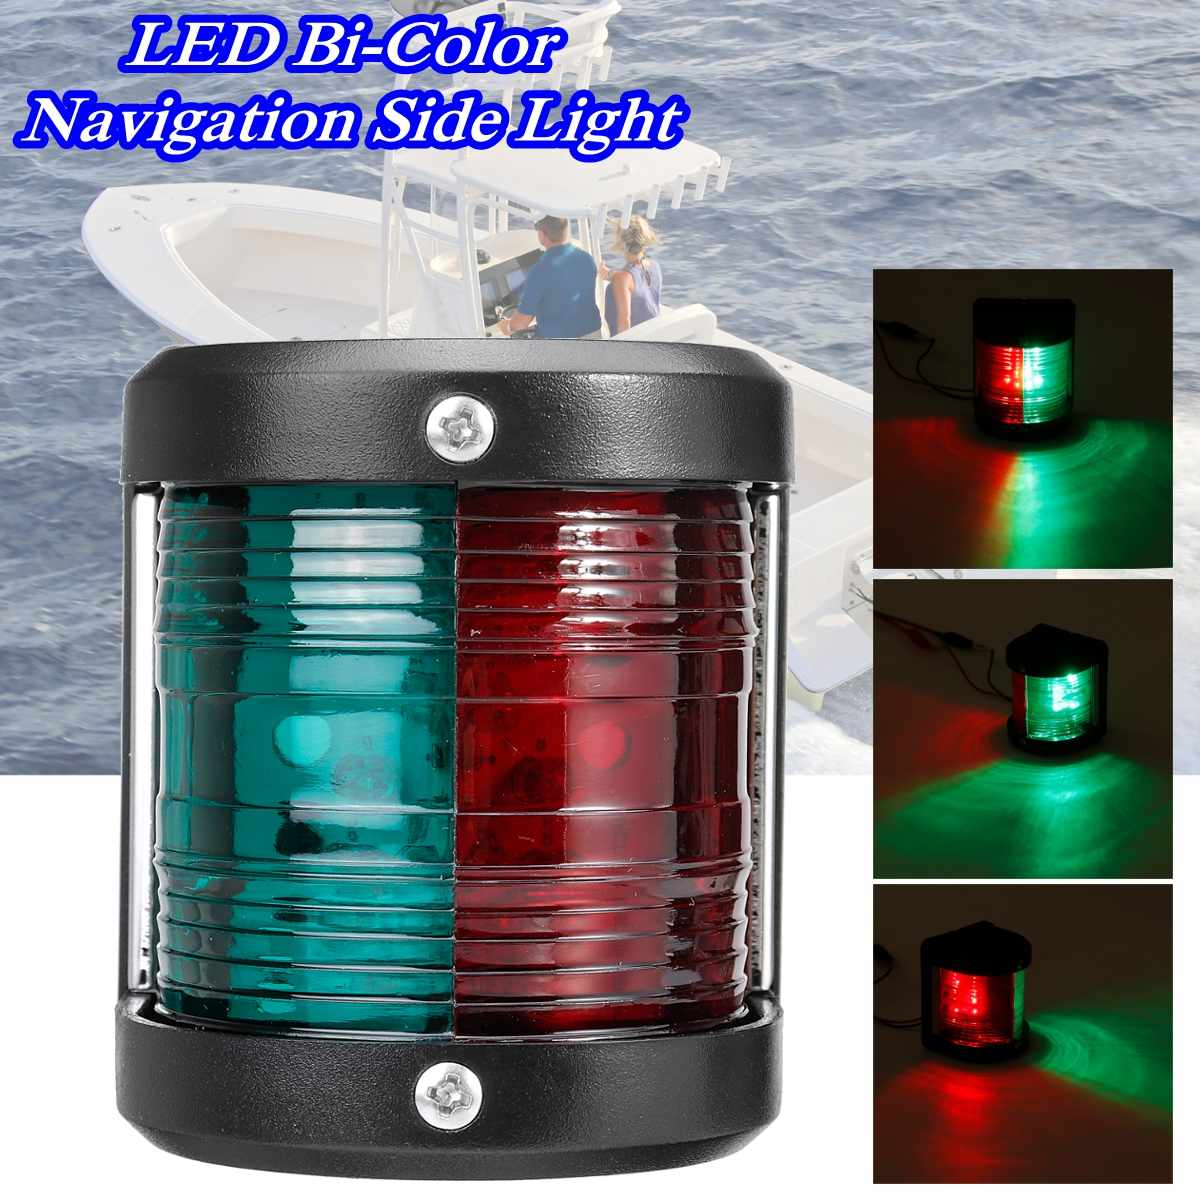 1Pcs Stainless Steel 12V LED Bow Navigation Light Red Green Mini  Sailing Signal Light For Marine Ship Boat  Yacht Warning Light